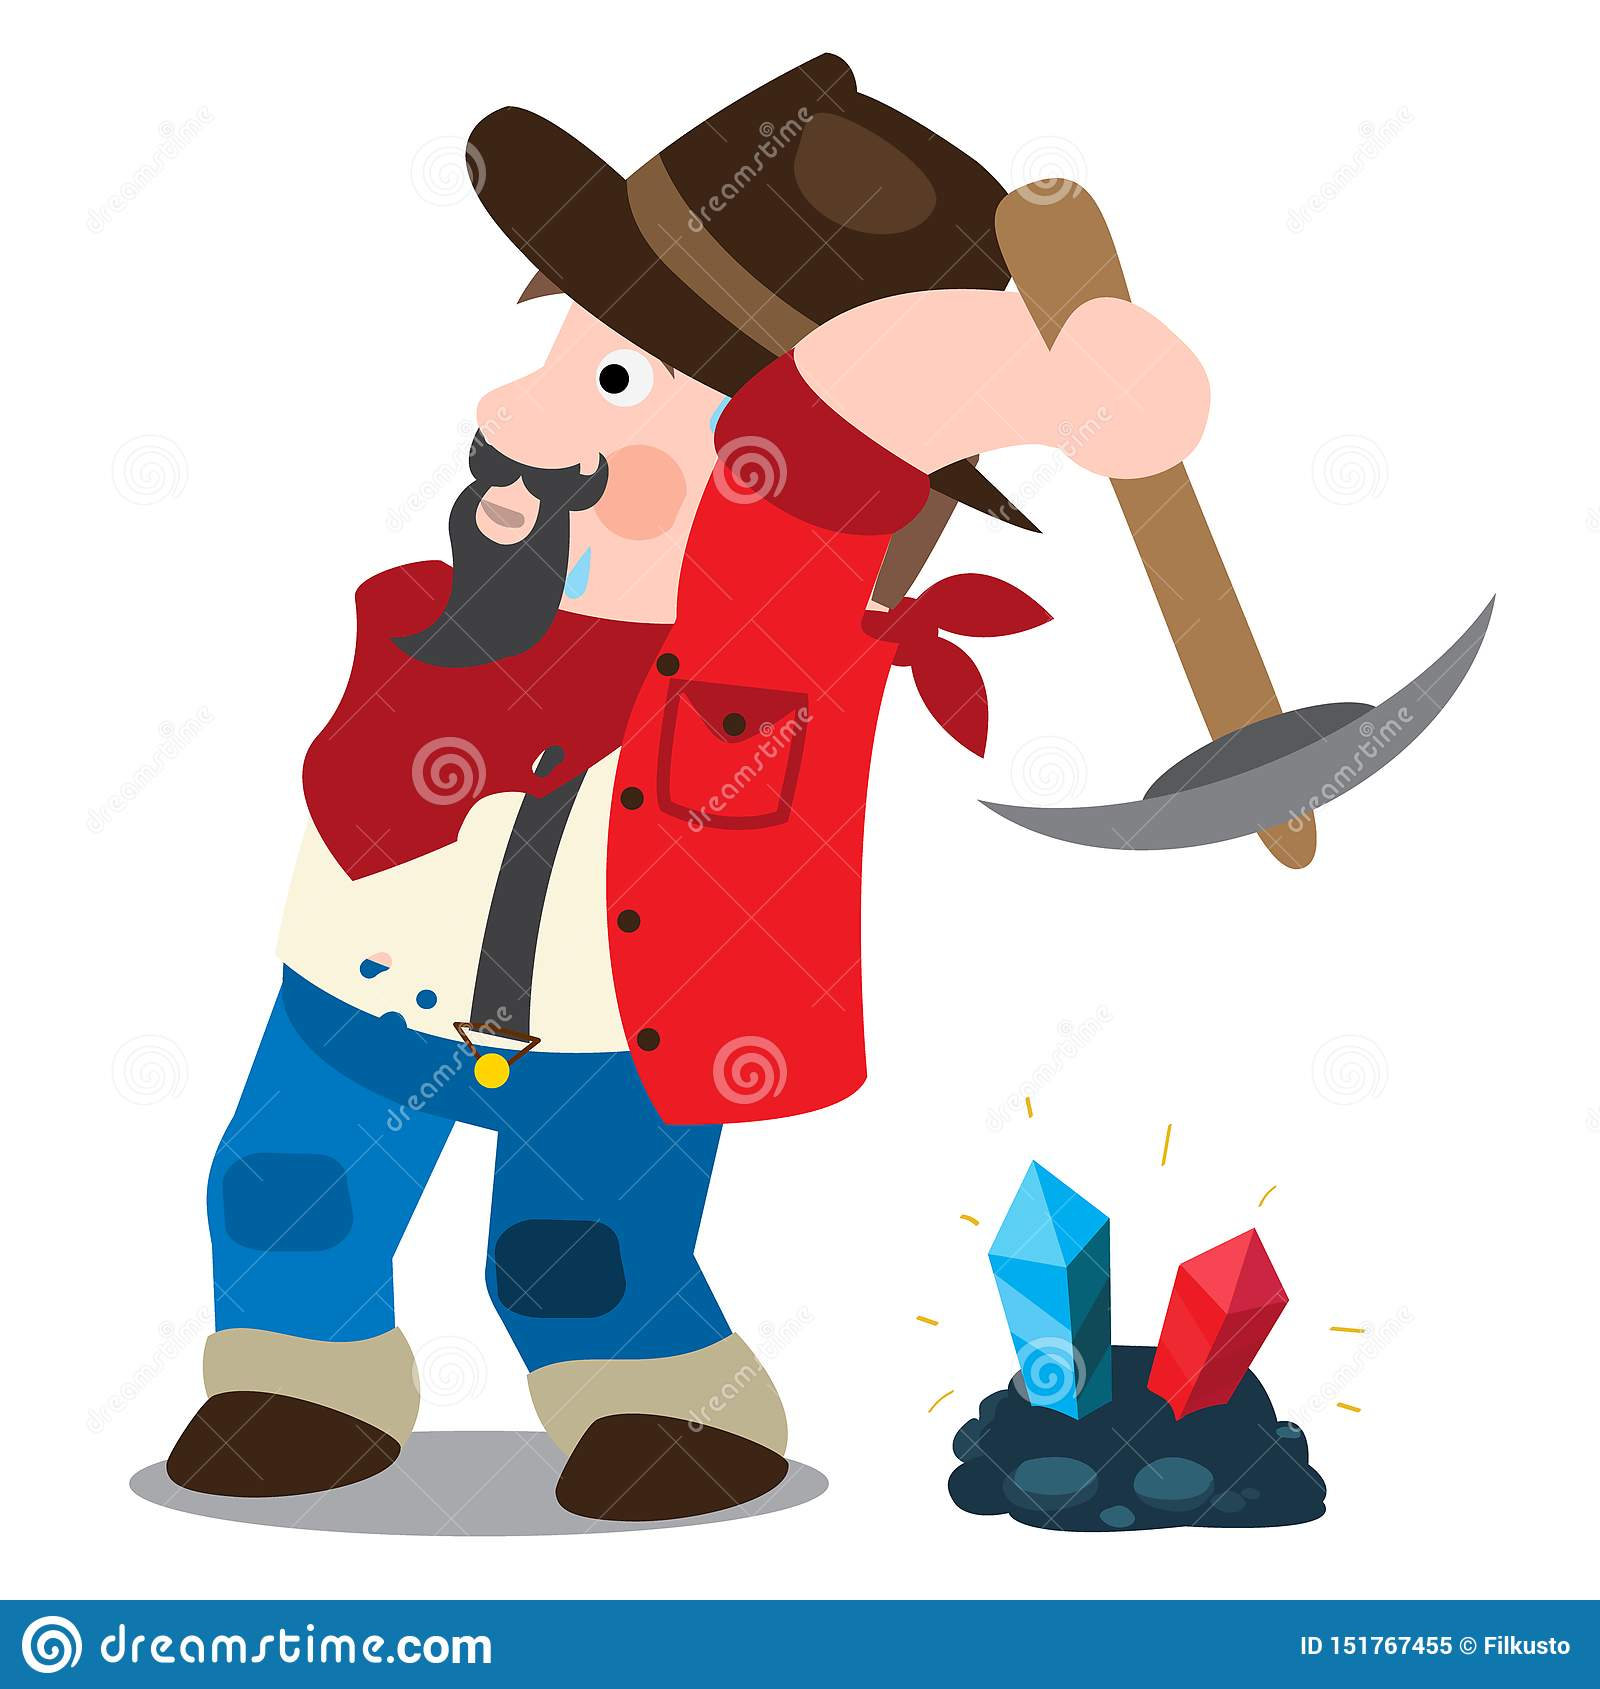 Prospector, cowboy, wild west illustration. Cartoon character of a man in a hat with a pickaxe